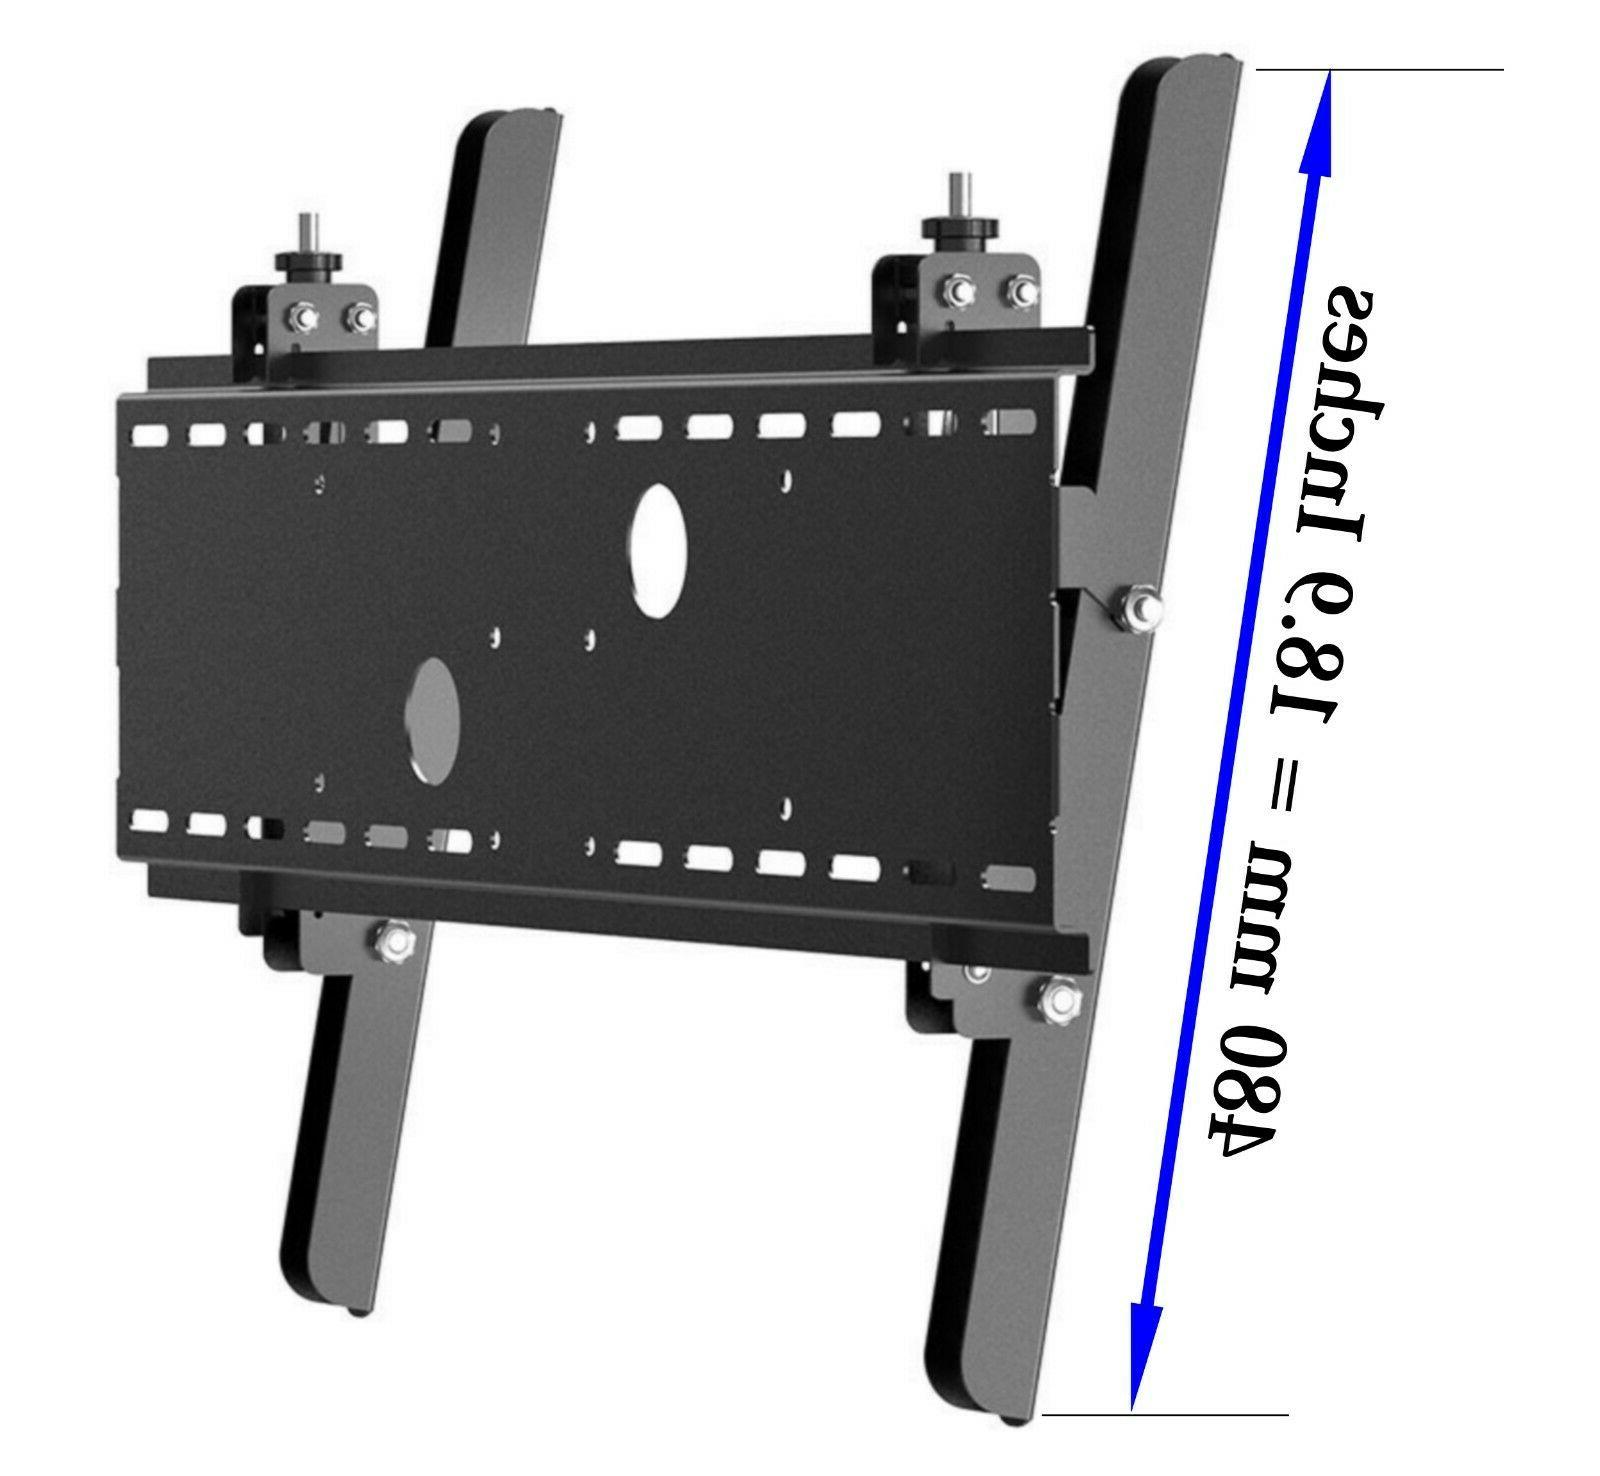 Tilting TV Mount 165 for to 63 Large TV's